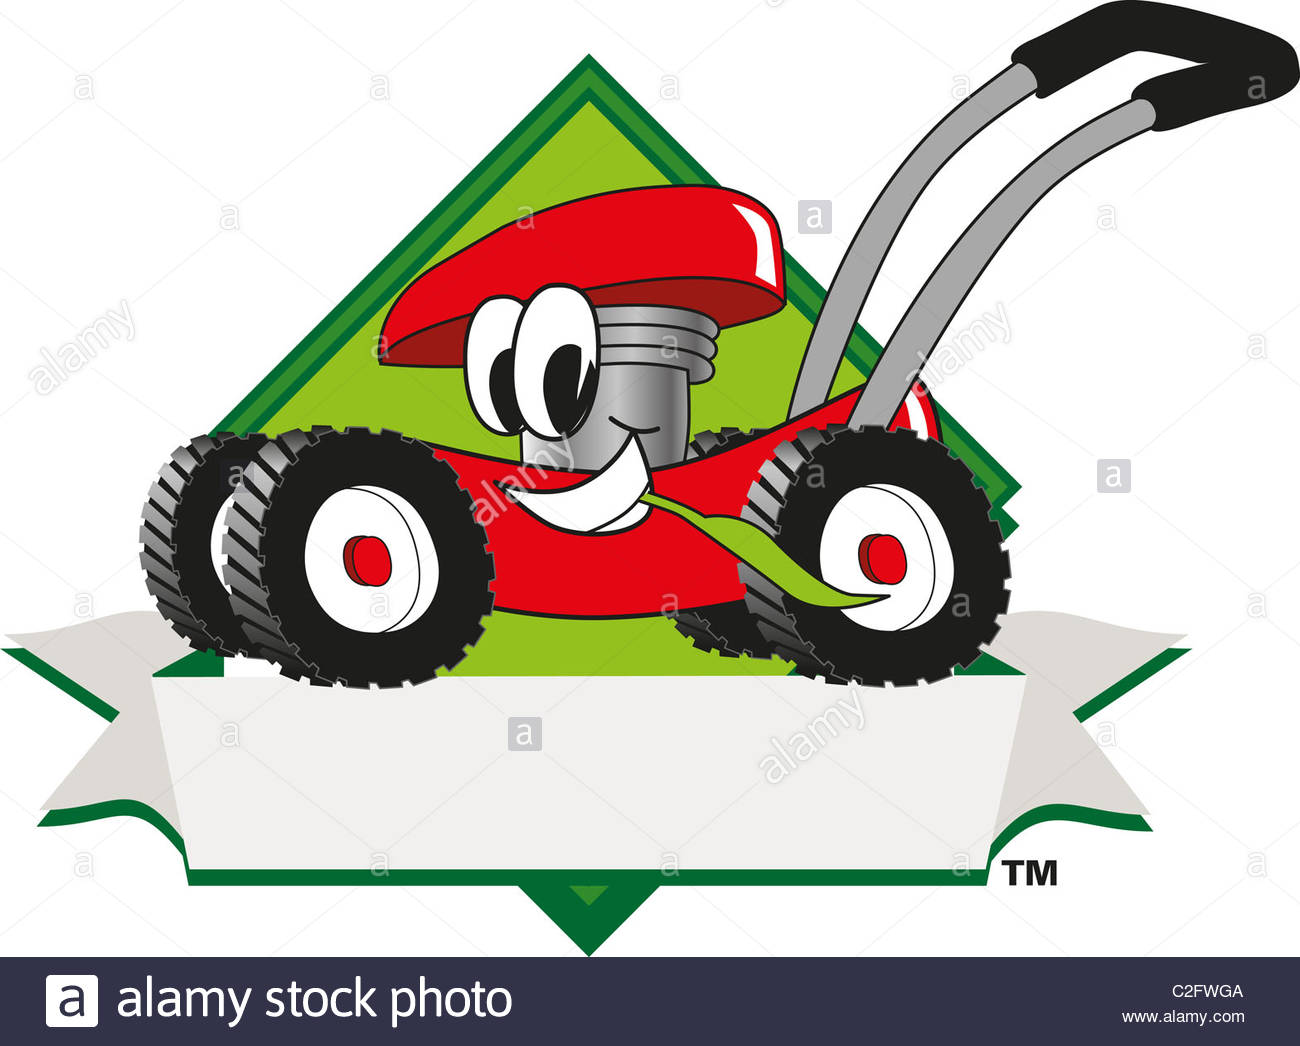 Lawn care stock clipart vector free Cartoon Lawn Mower Logo Template Stock Photo, Royalty Free Image ... vector free